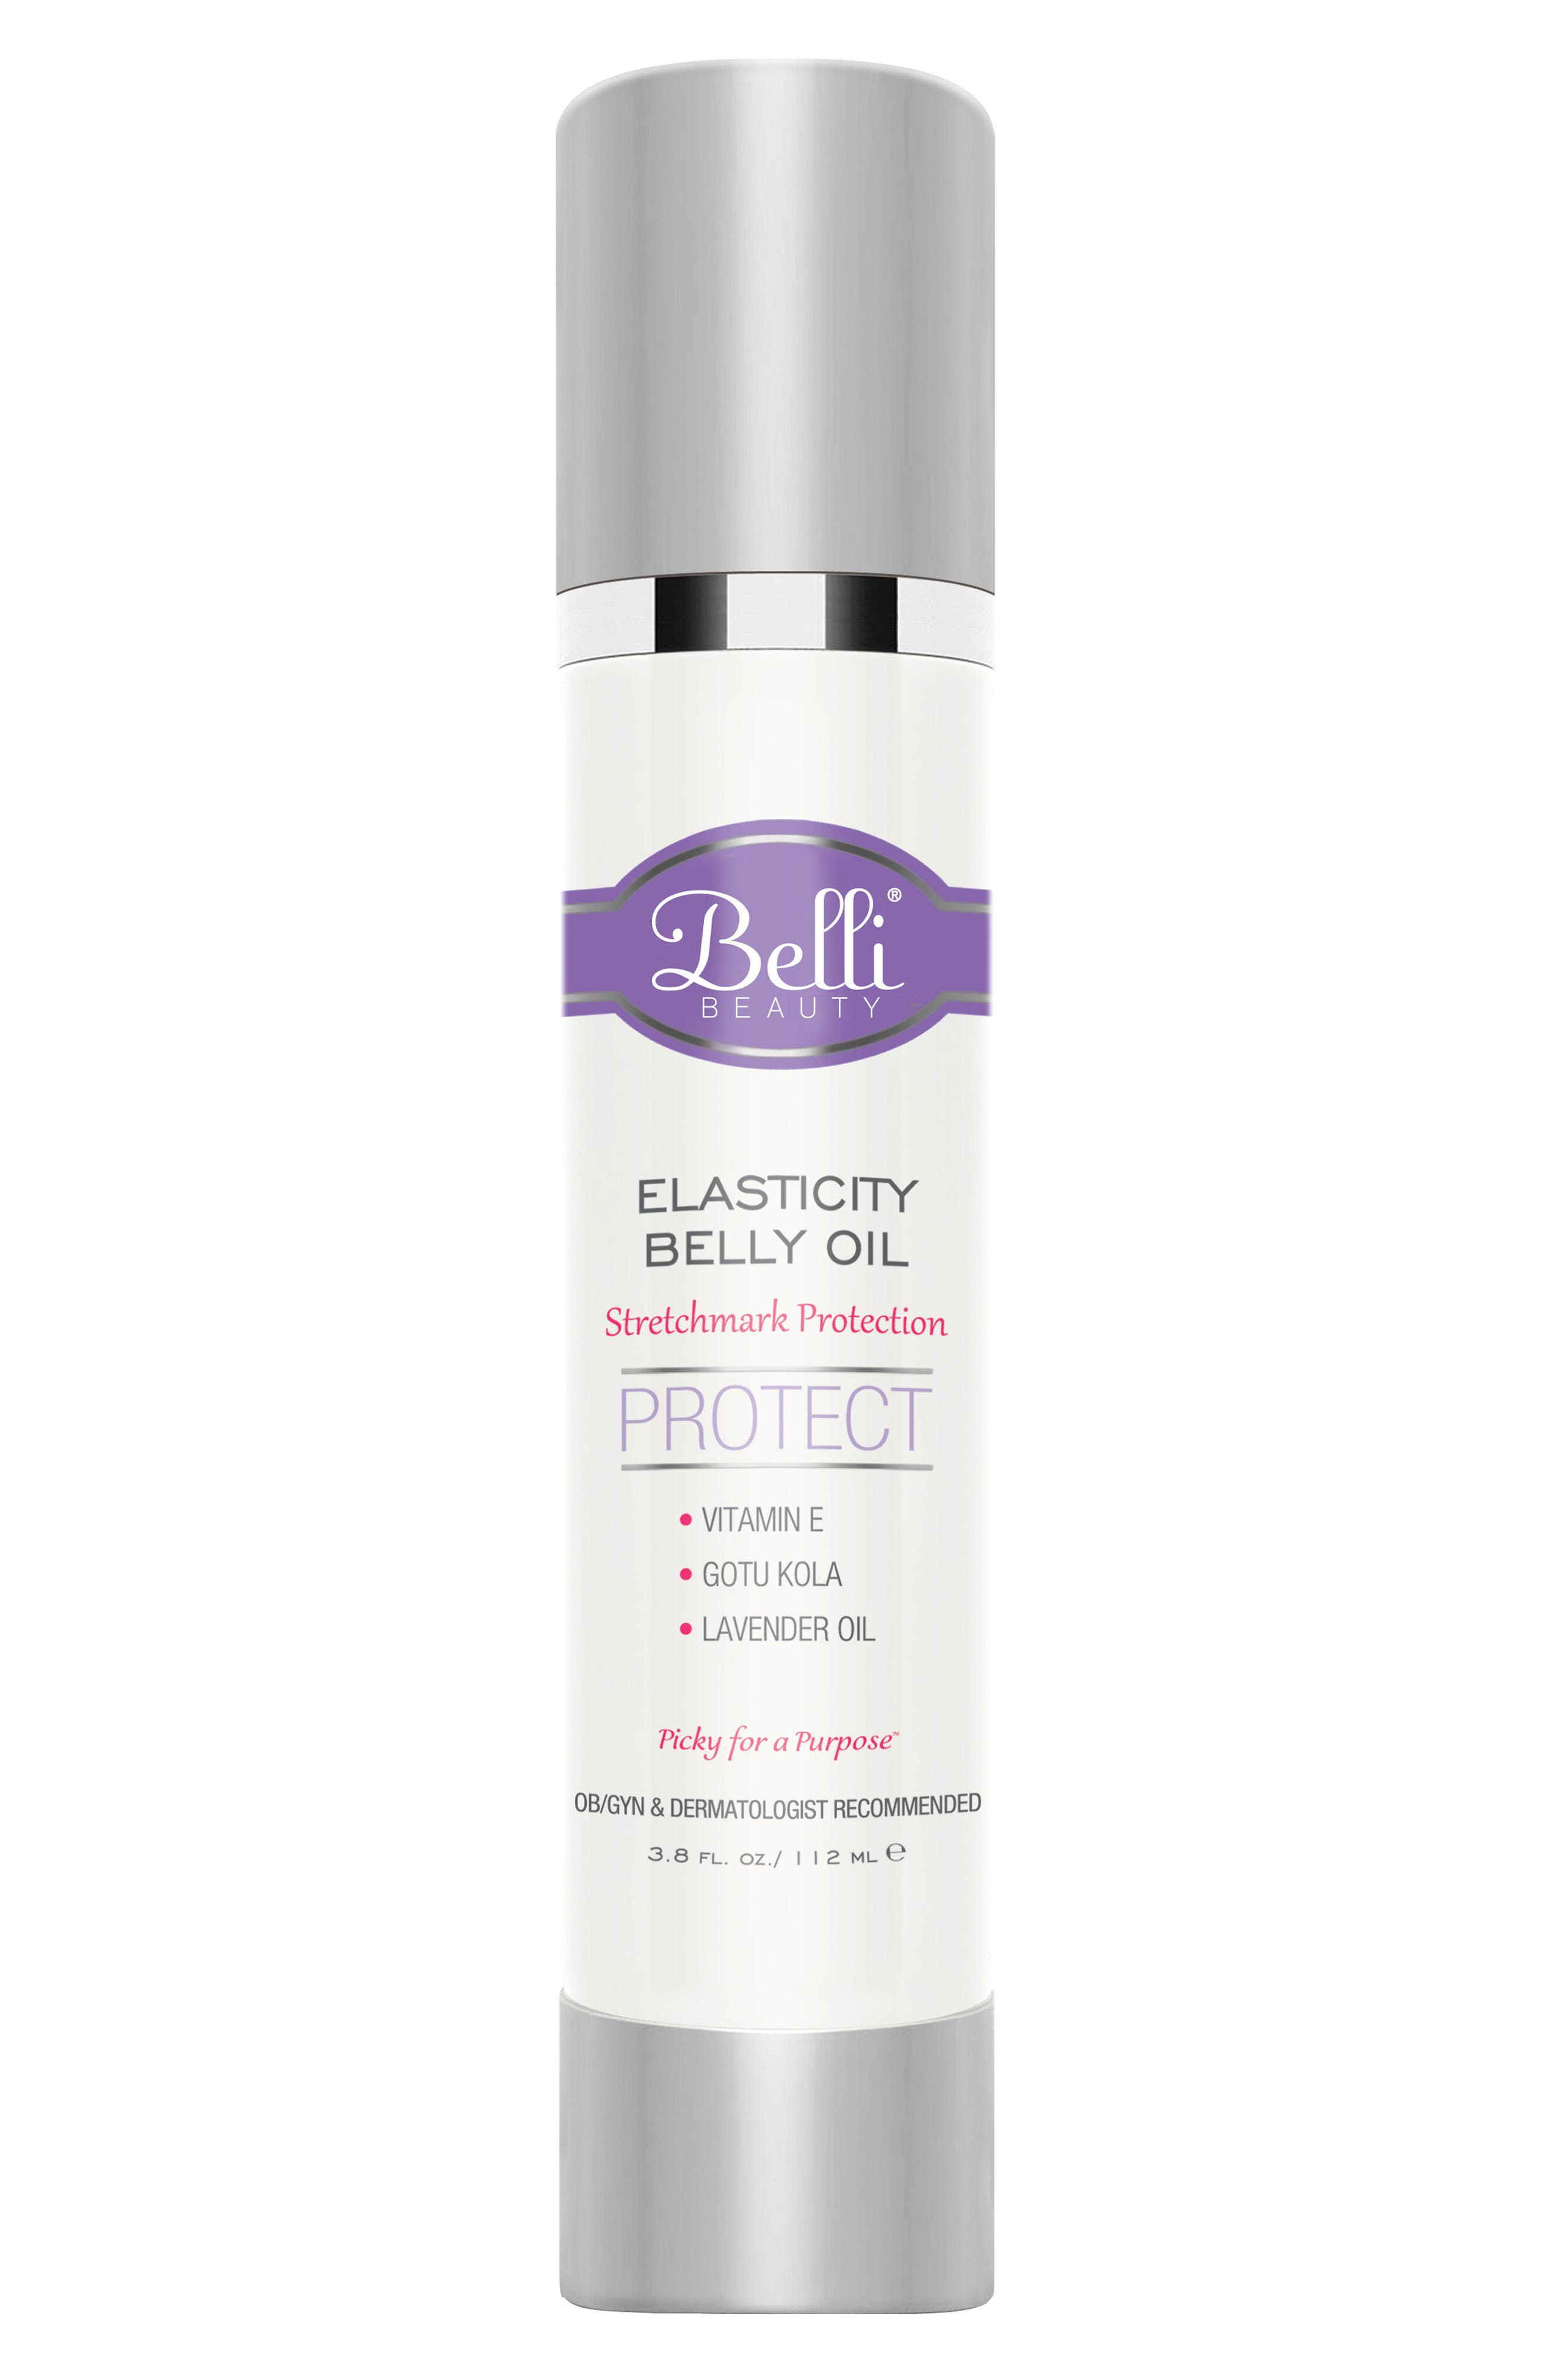 'Elasticity' Belly Oil for Stretch Mark Protection,                         Main,                         color, White